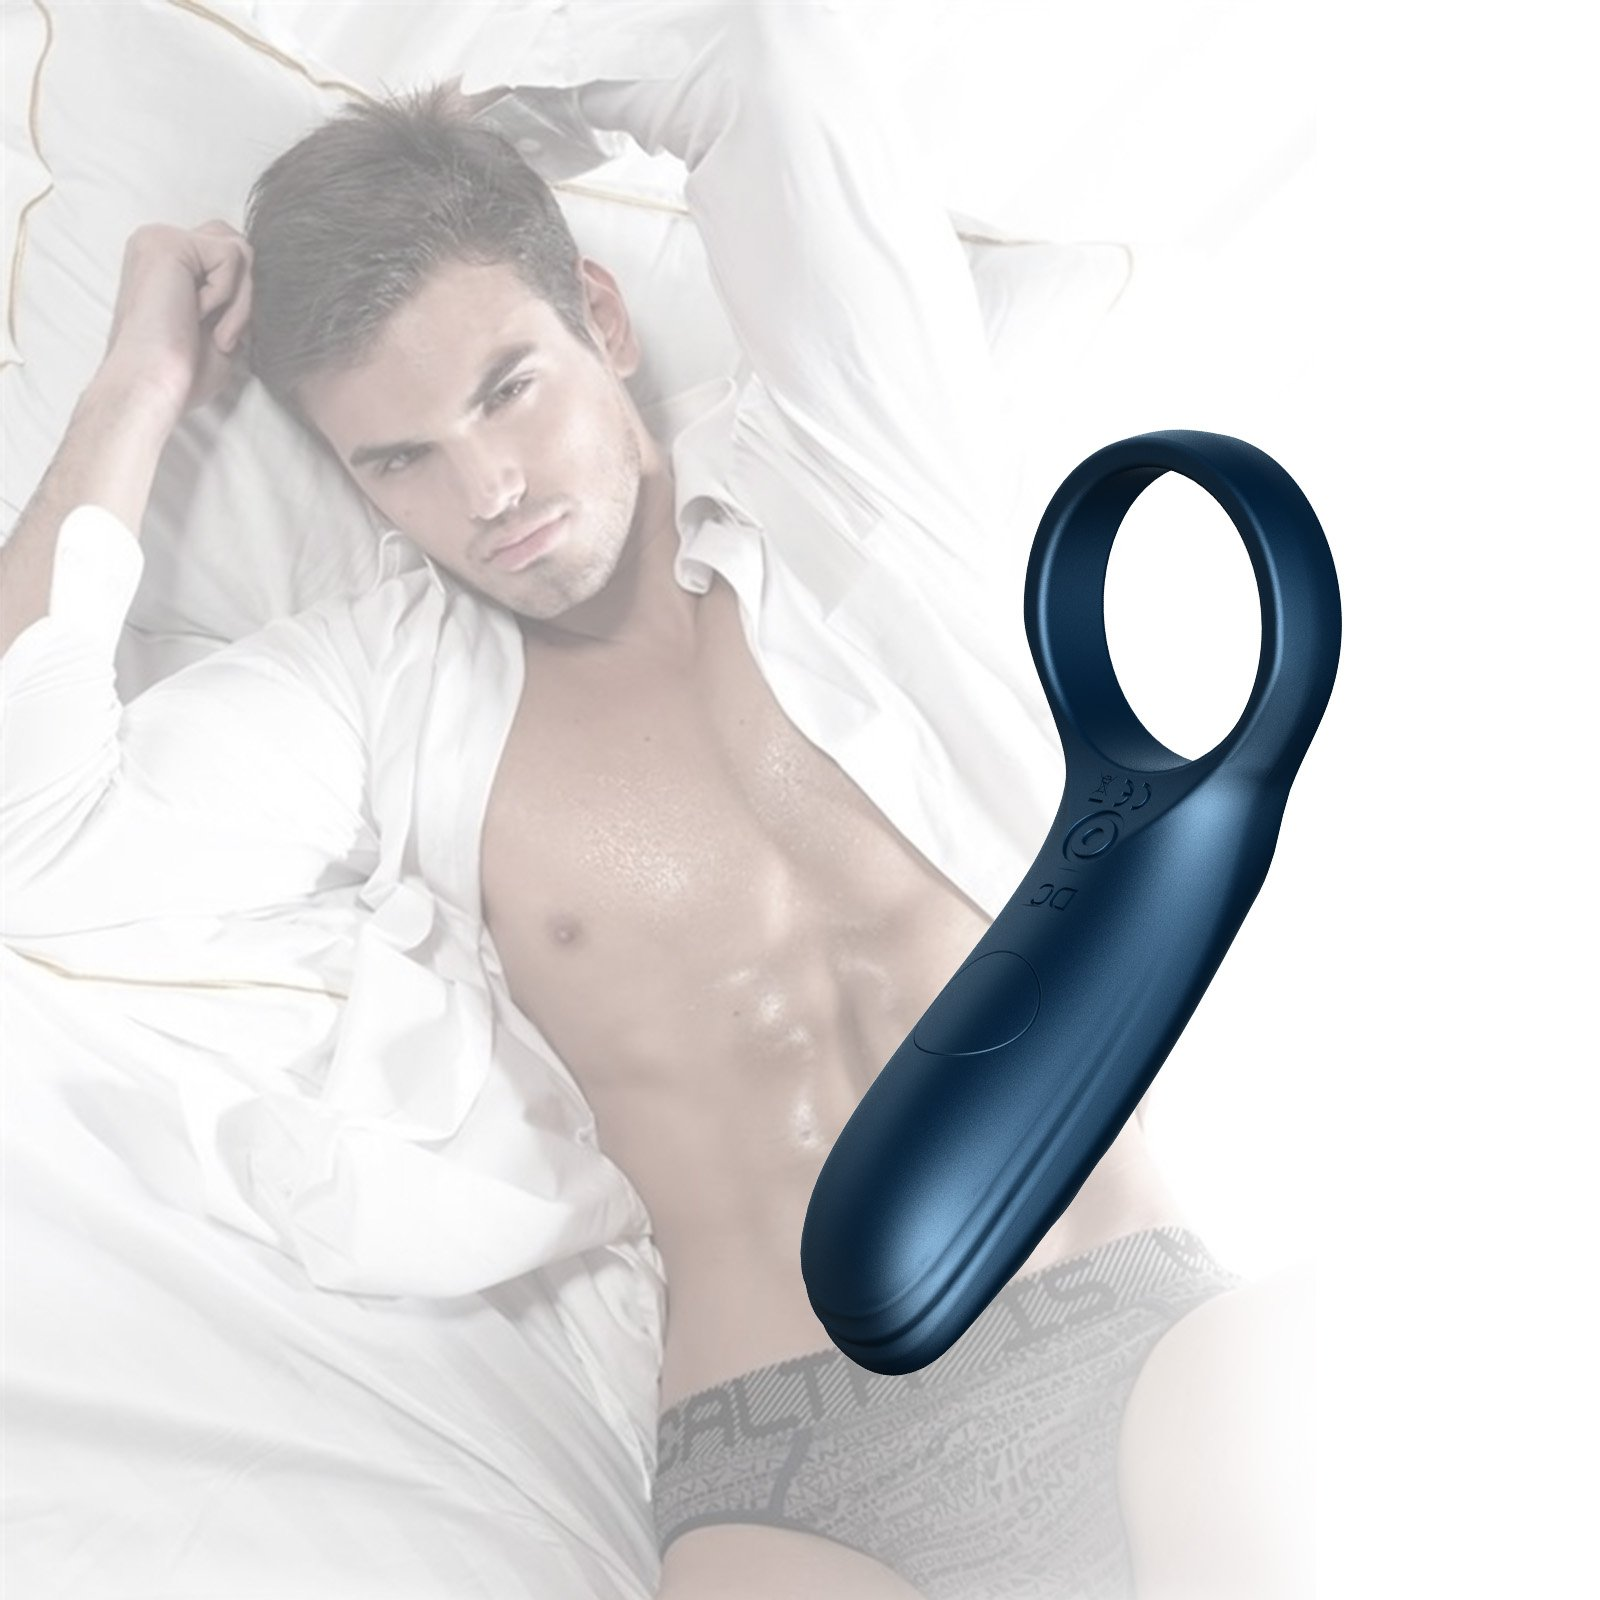 Vibrating Cock Ring - Silicone Waterproof Rechargeable Penis Ring Vibrator -Clitorial Stimulator Vibrator Sex Toy for Male Or Couples(Blue)